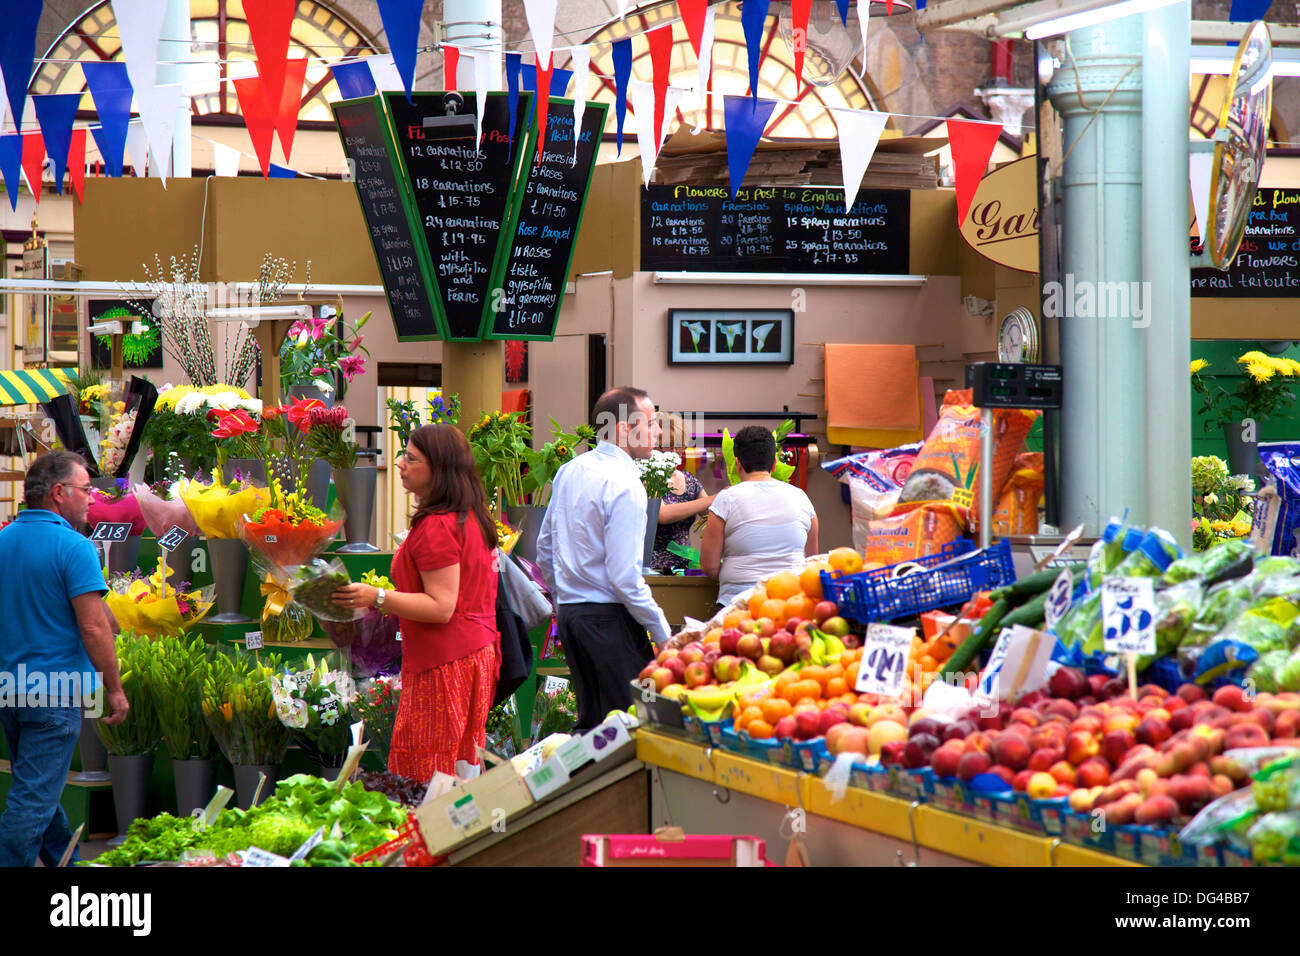 Interior of Central Market, St. Helier, Jersey, Channel Islands, Europe - Stock Image